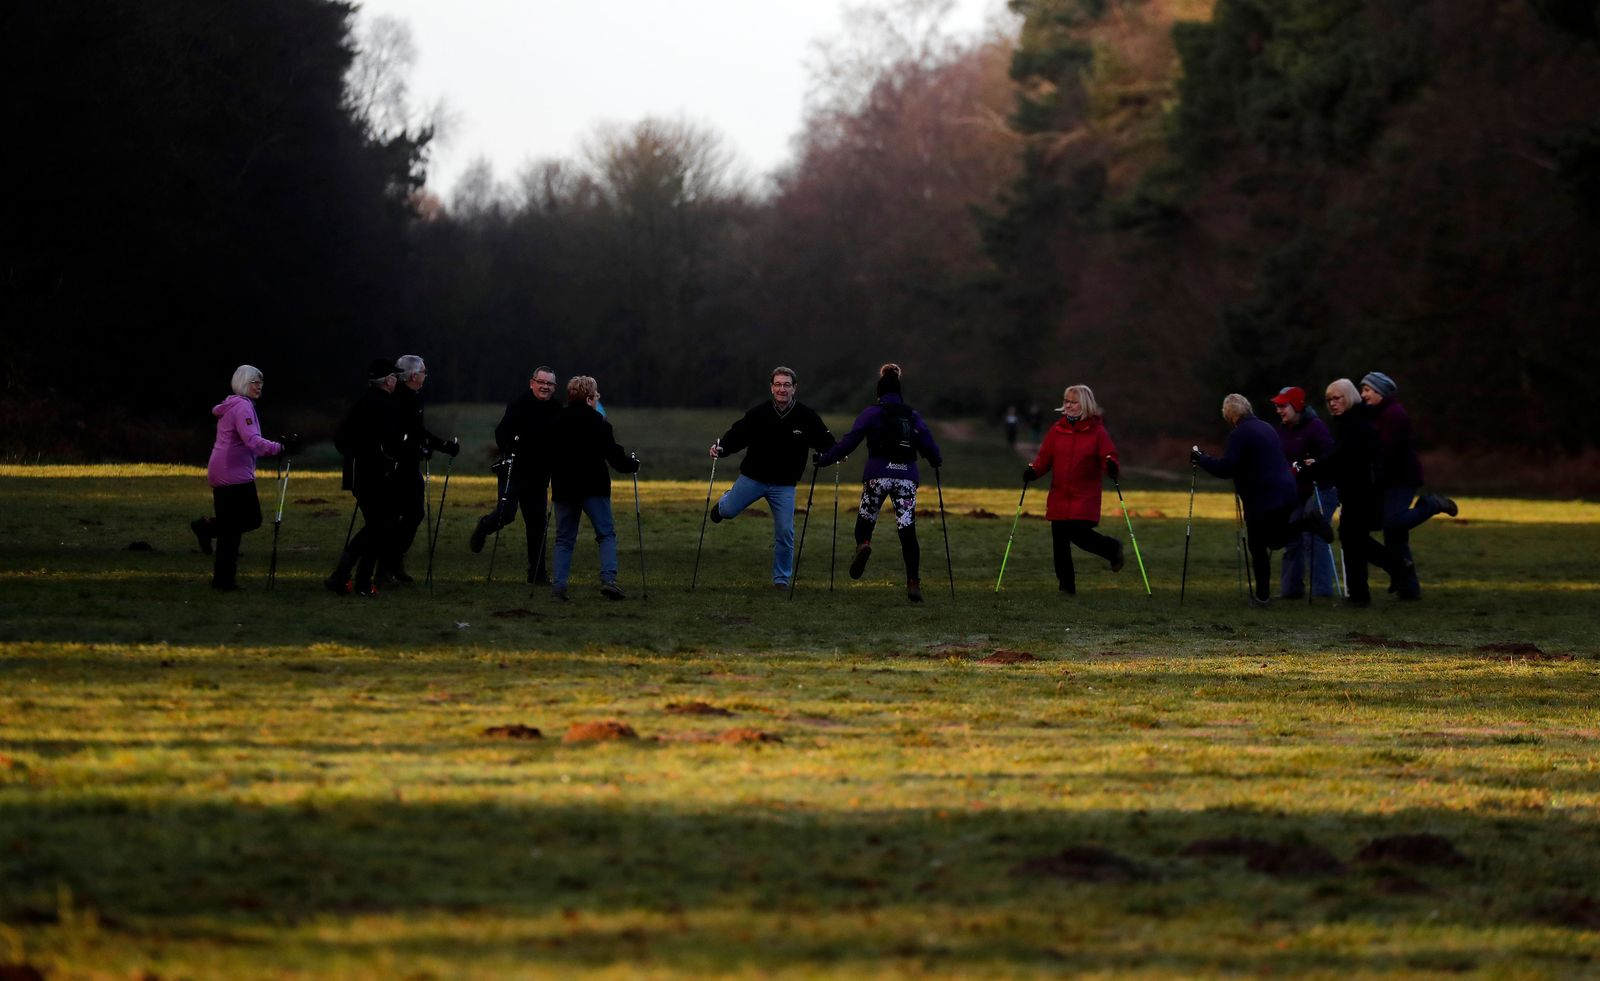 People take part in a morning activity near an entrance of Sandringham estate, Sandringham, England, early morning Monday, Jan. 13, 2020. Britain's Queen Elizabeth II  is preparing for a crisis family meeting to work out a future for Prince Harry and his wife, Meghan, after their dramatic decision to walk away from royal roles. (AP Photo/Frank Augstein)